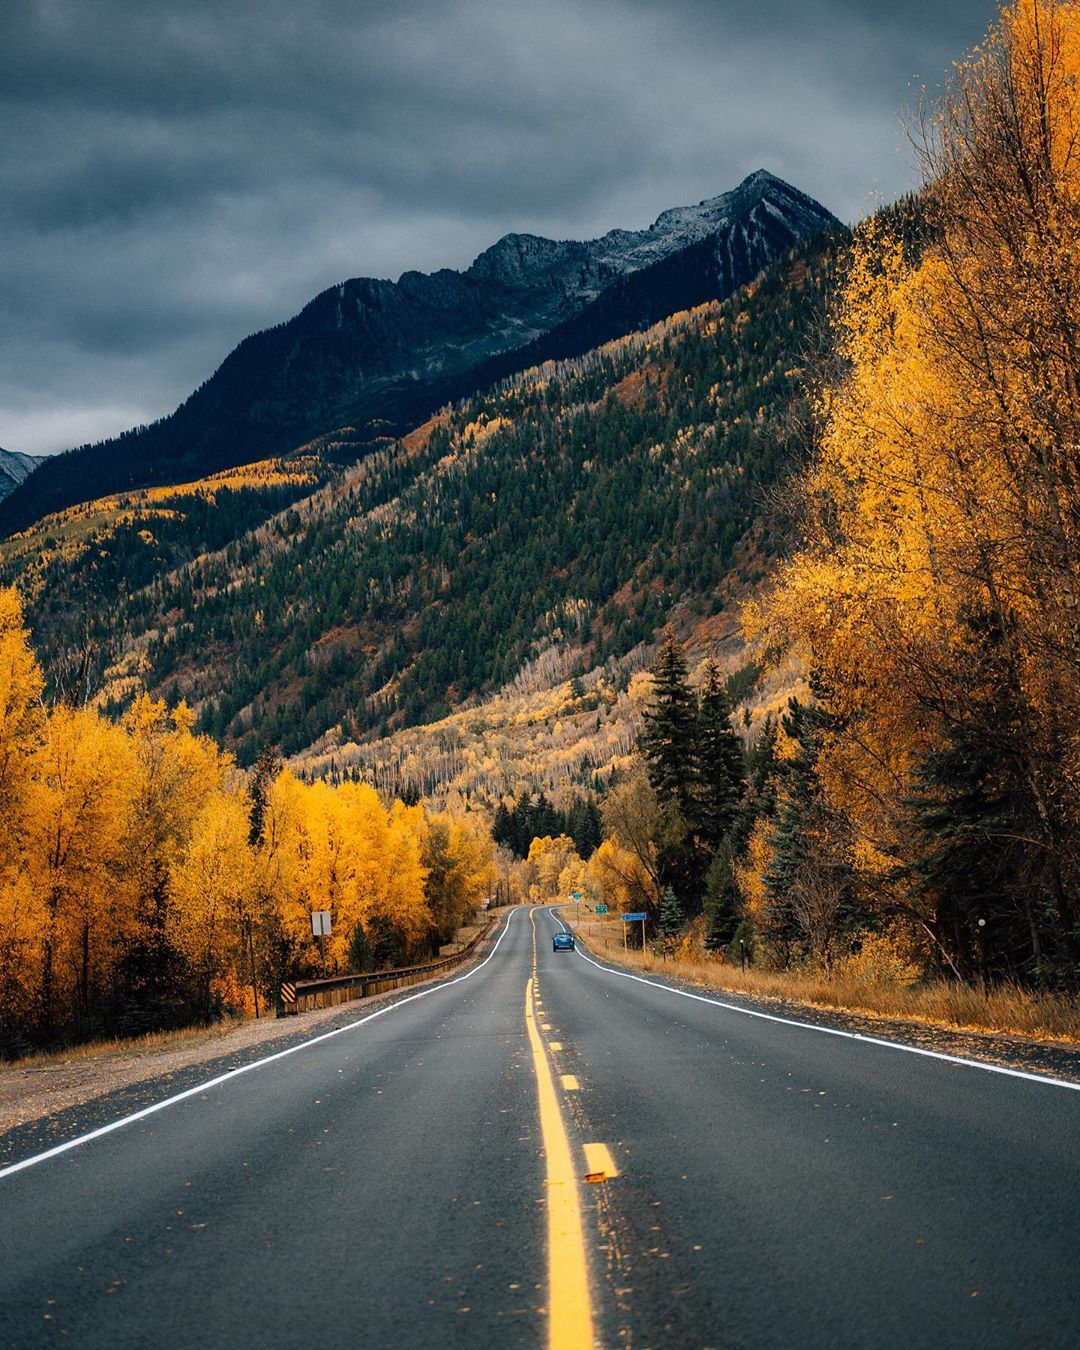 There Is Something About Long Drives Through The Fall Colored Views That Gets Me Excited To Wake Up Every Morn Beautiful Scenery Nature Beautiful Roads Scenery